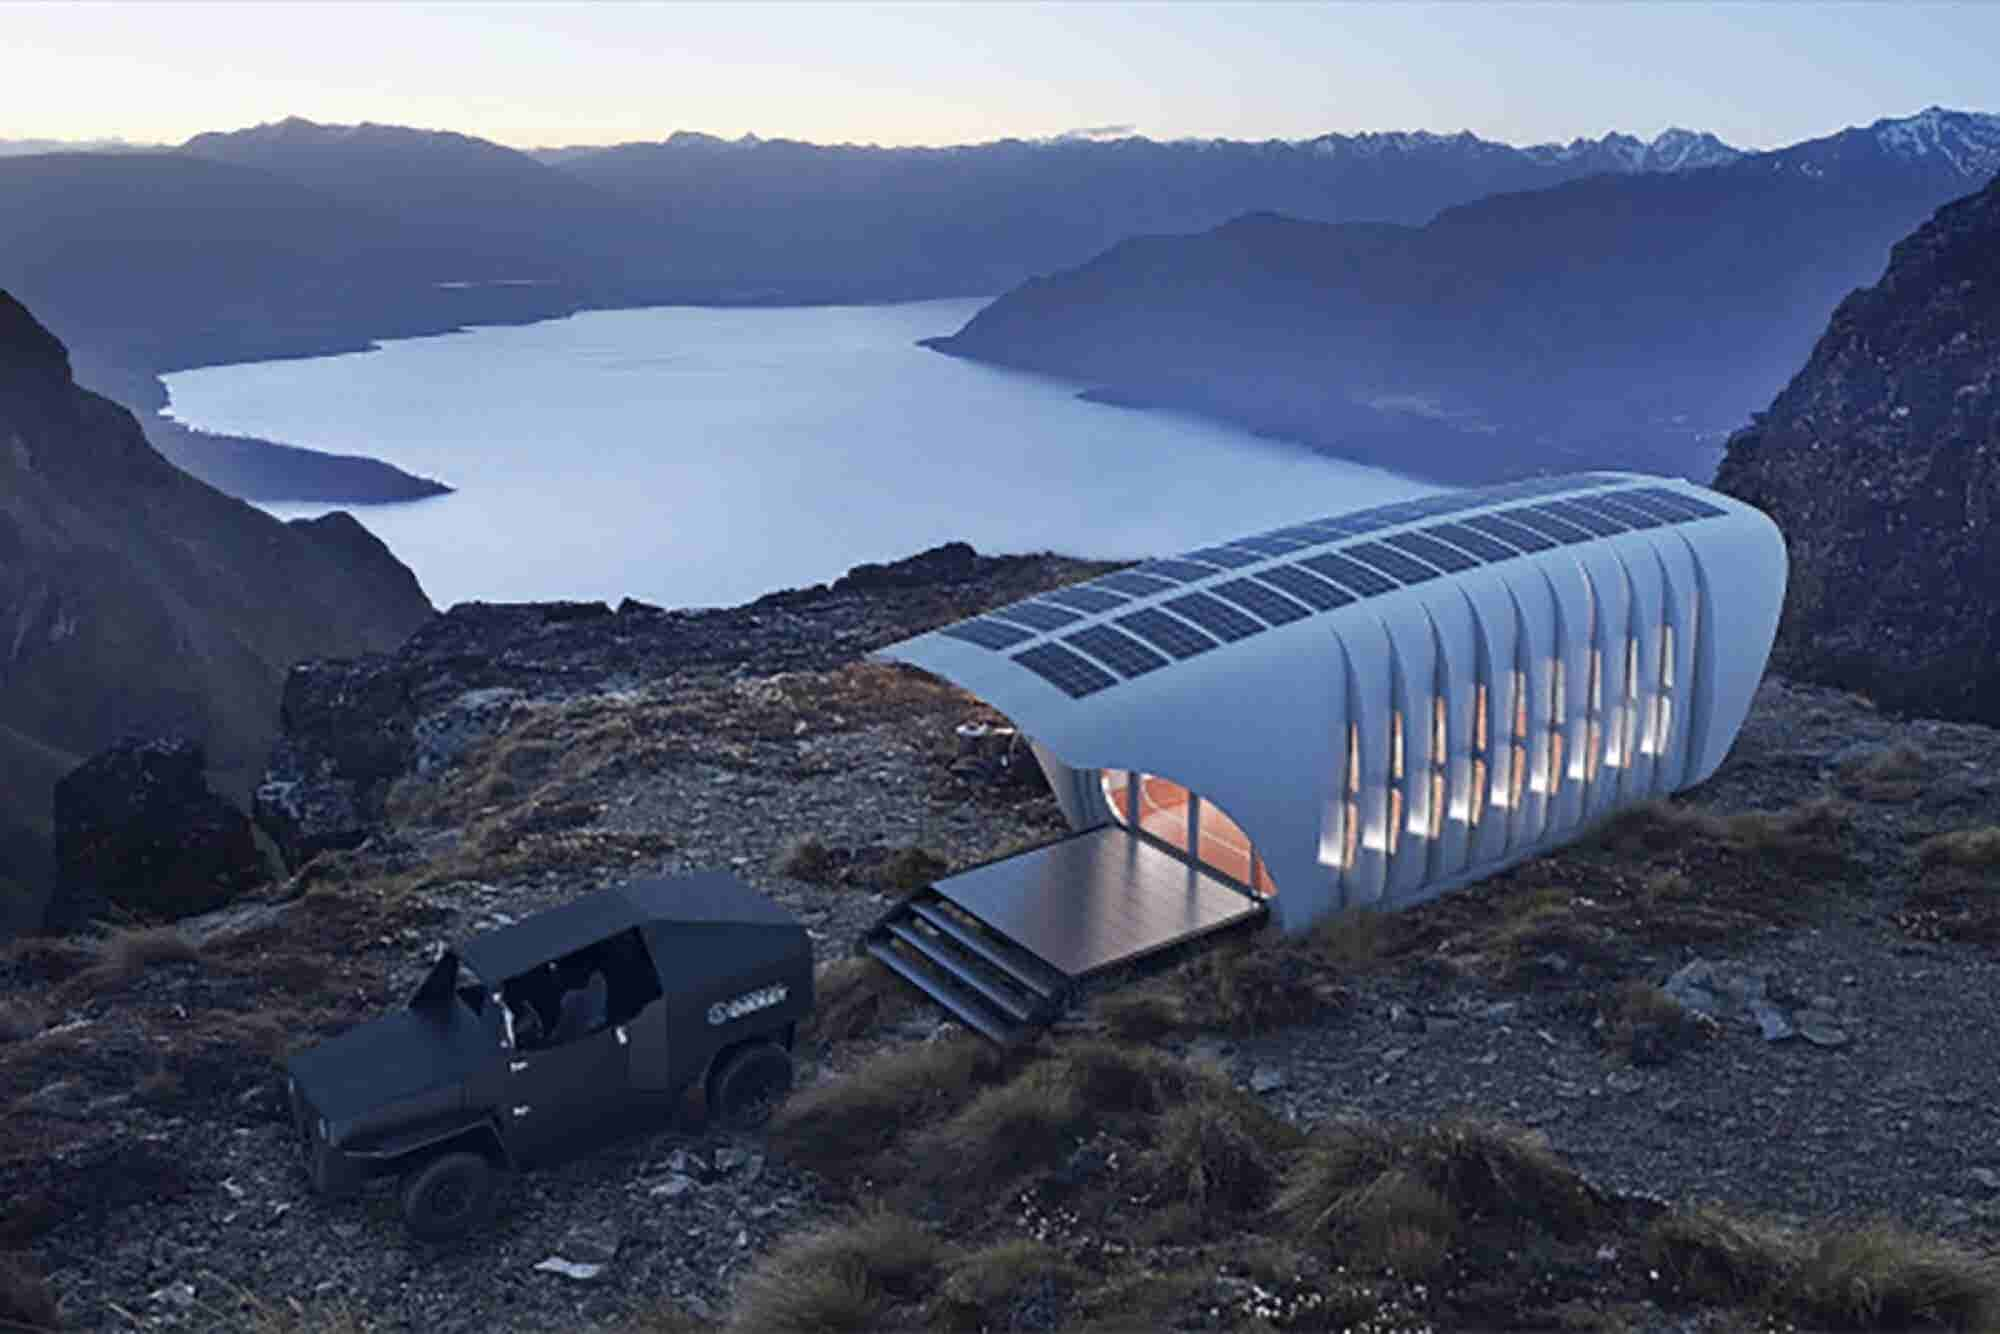 Check Out This Super Cool Sustainable 3-D Printed House and Car Combo